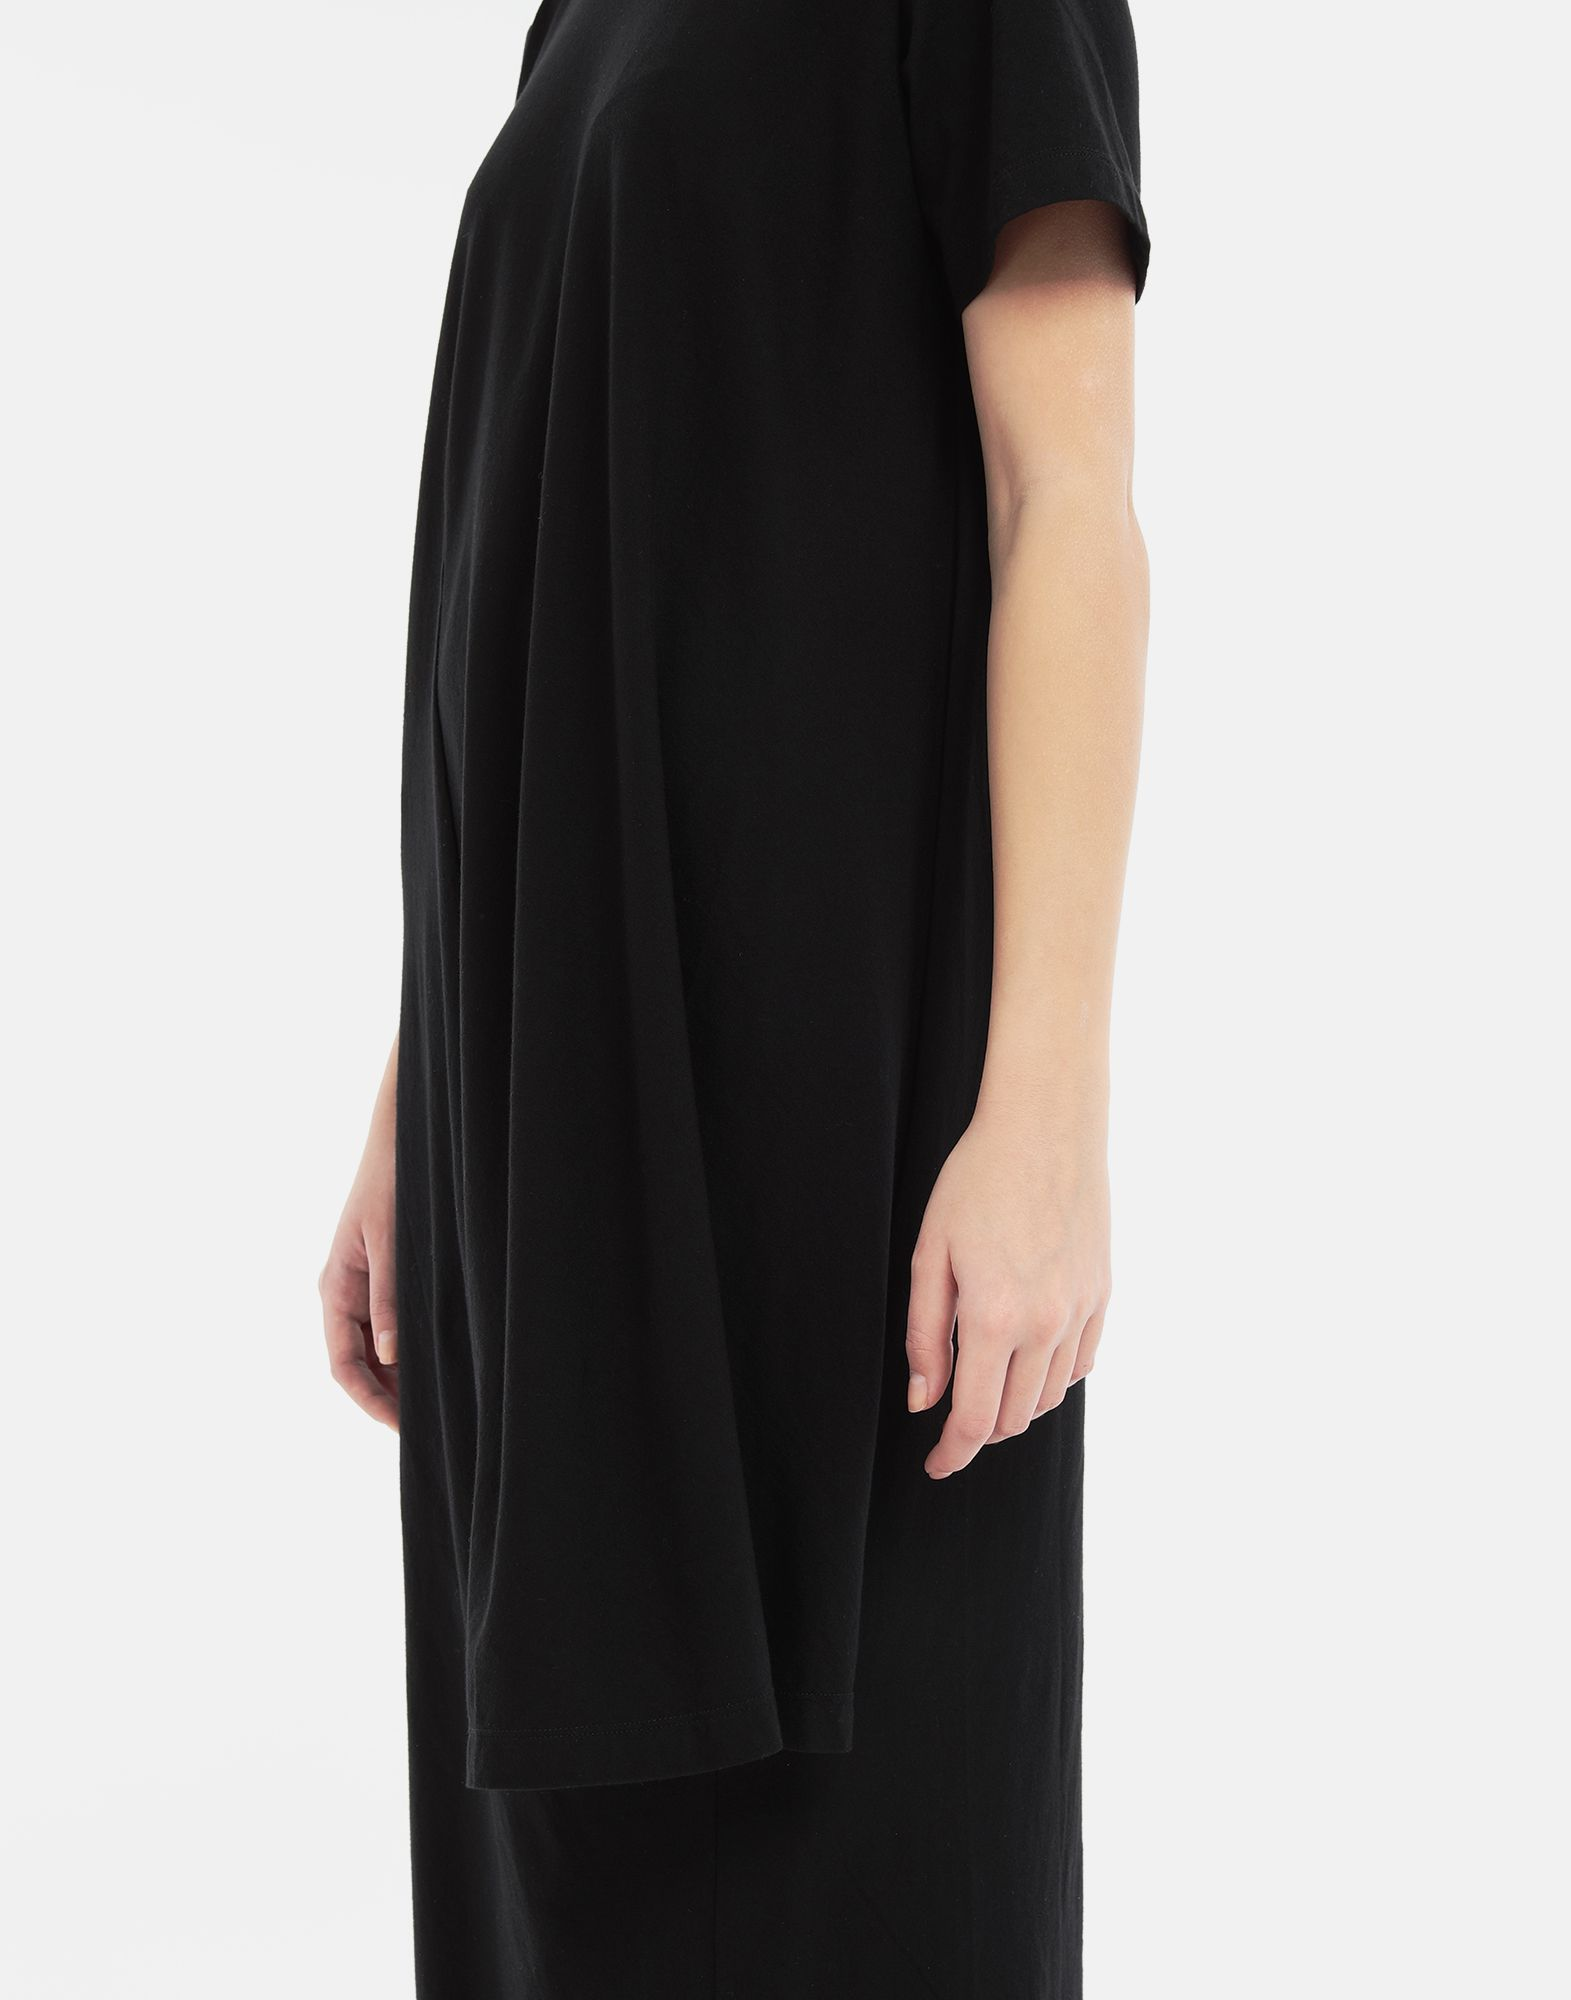 MM6 MAISON MARGIELA Layer dress 3/4 length dress Woman a